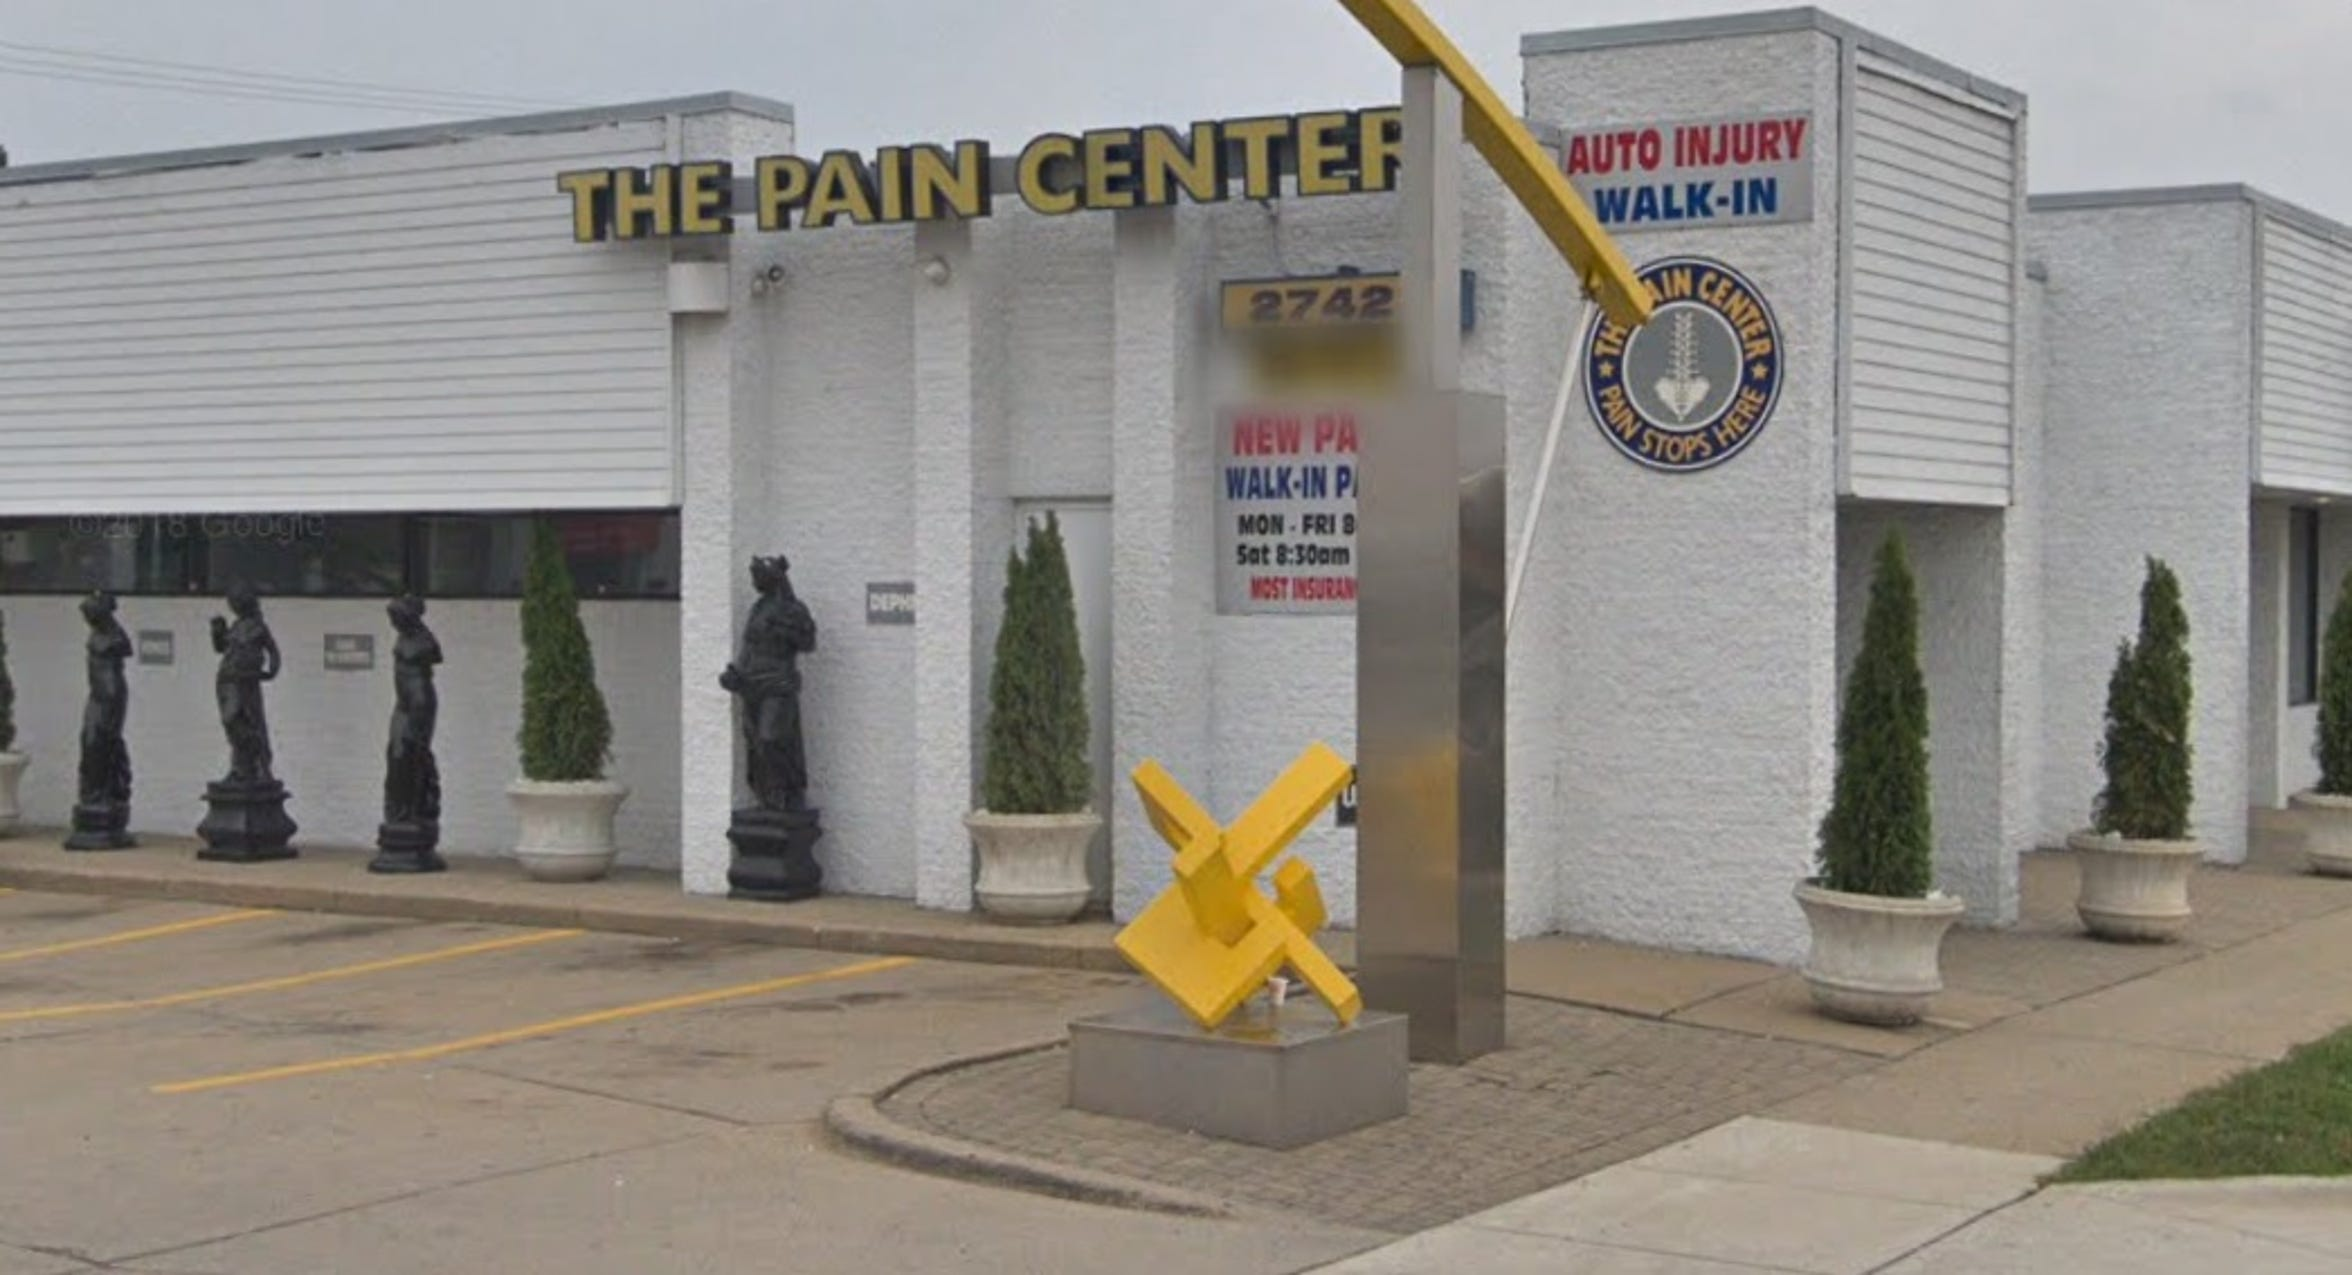 The Pain Center USA in Warren along Van Dyke Avenue, north of Eleven Mile Road.